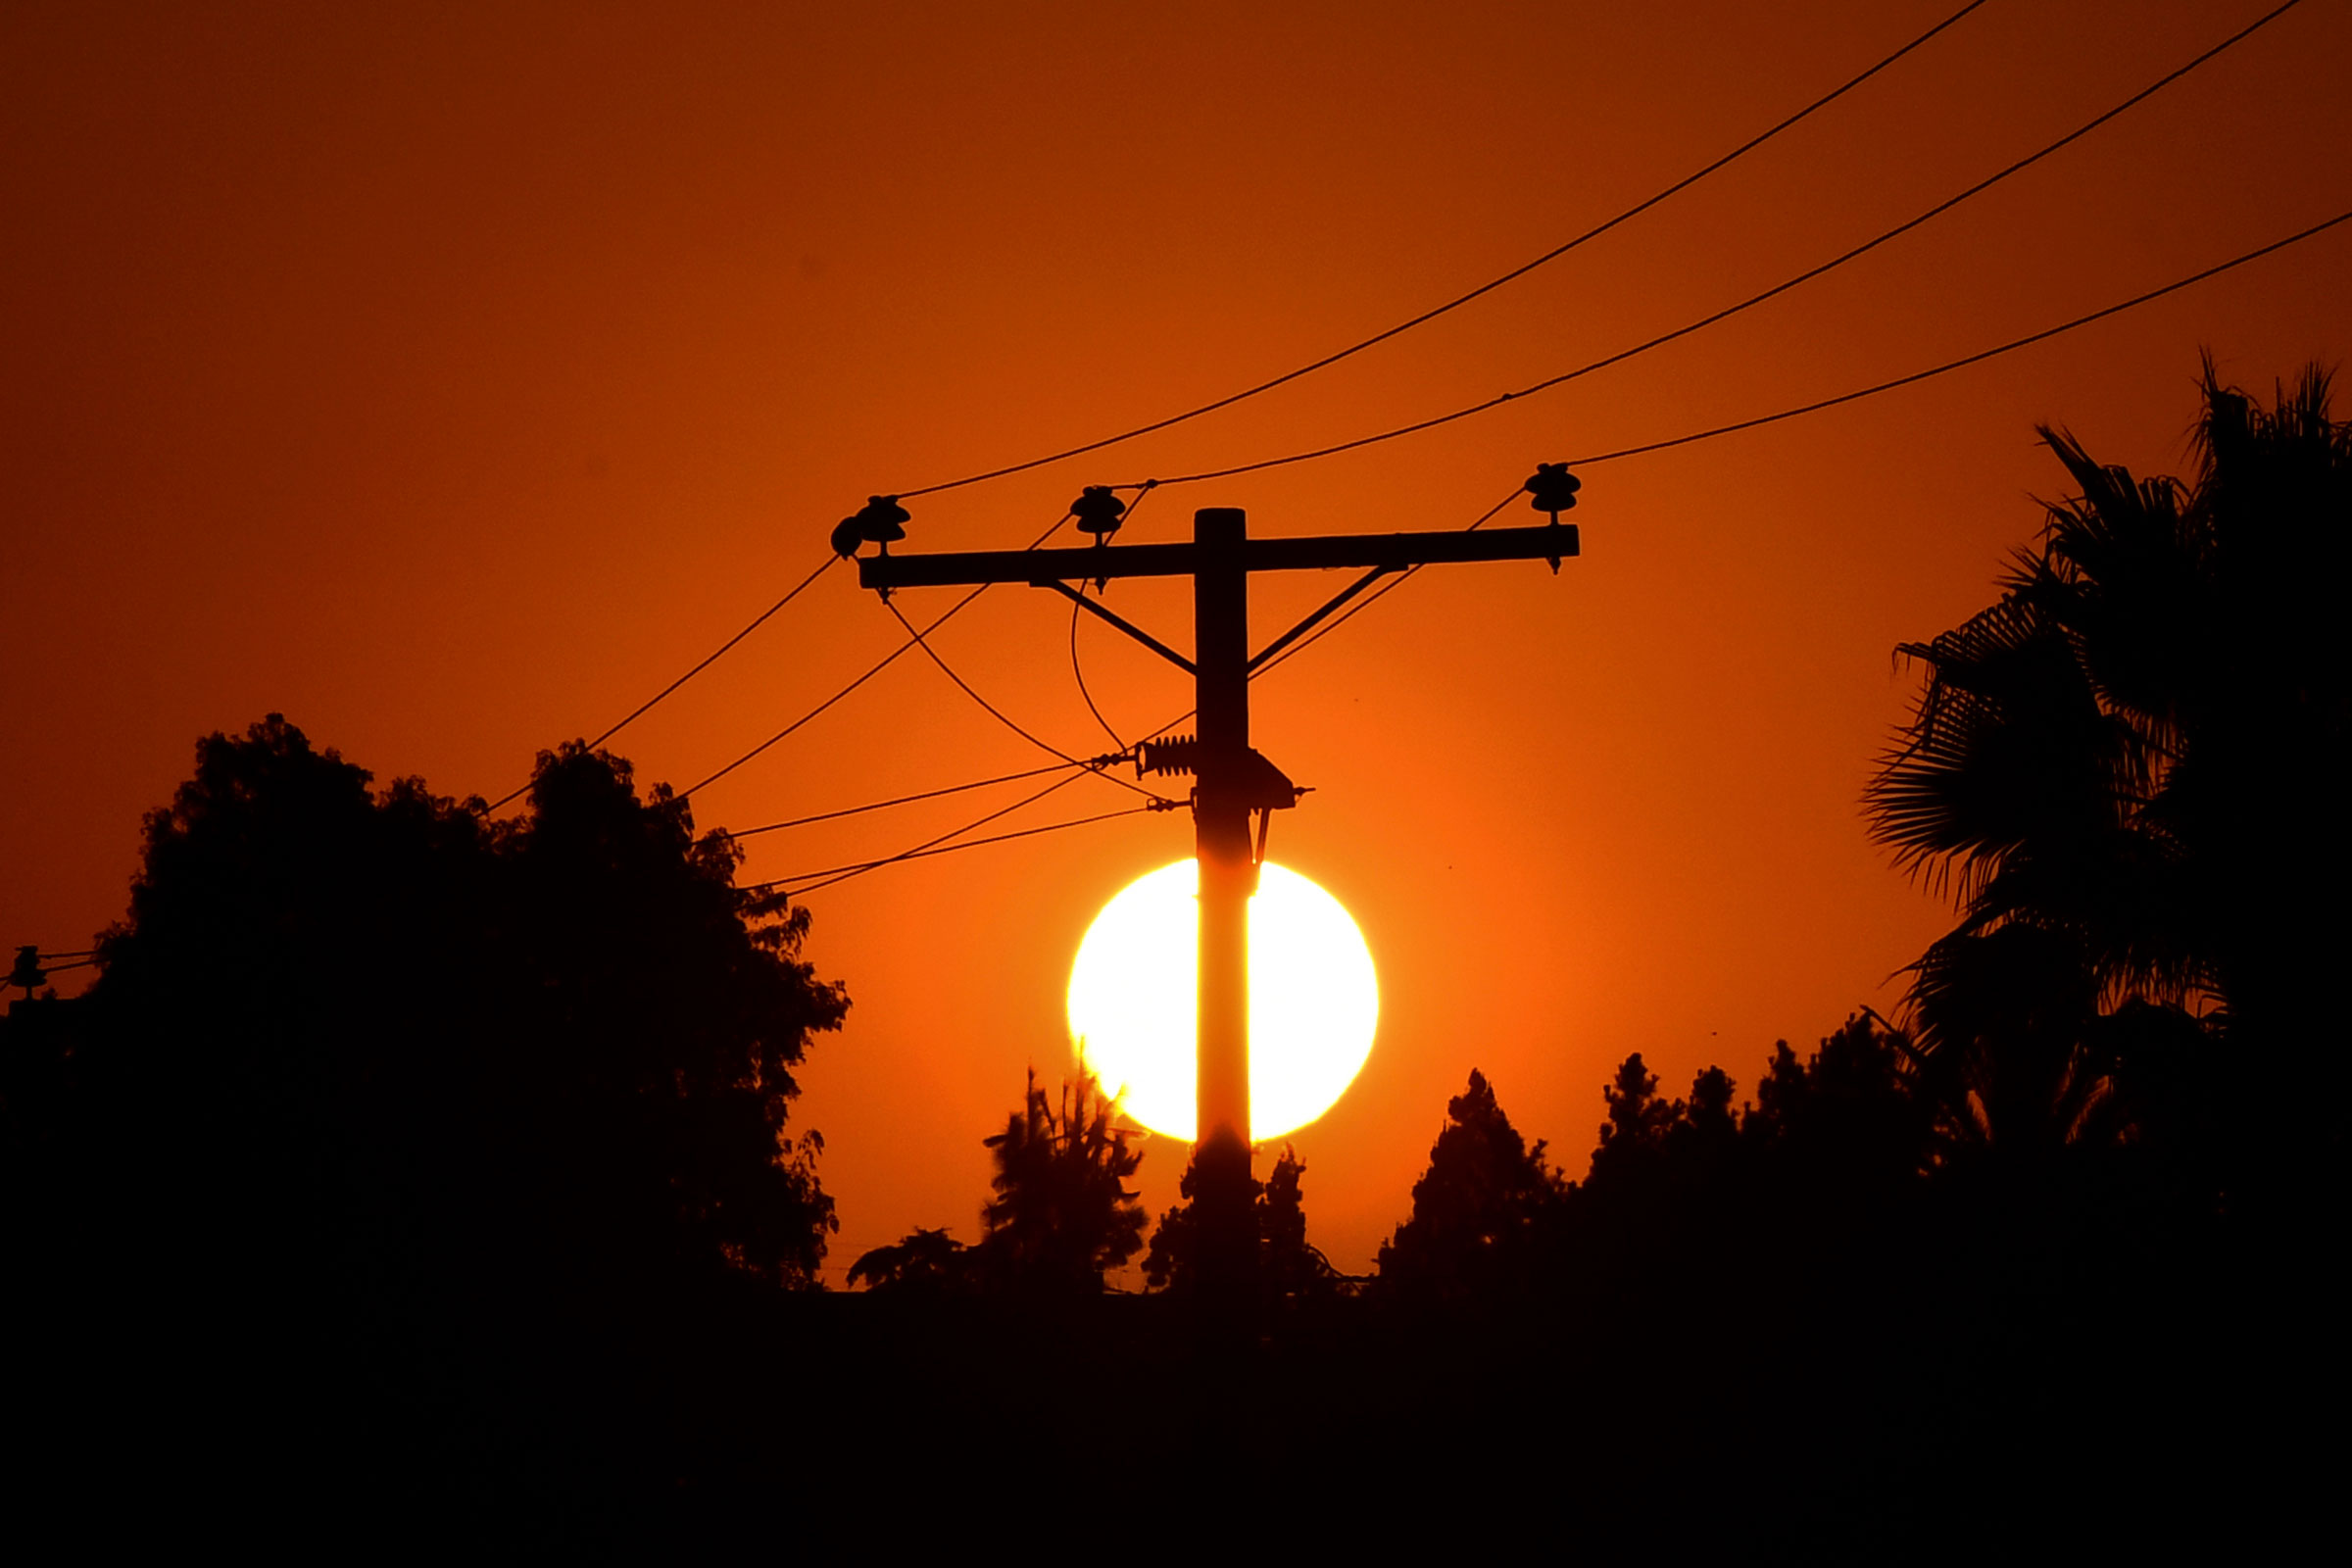 The sun sets behind power lines in Los Angeles, Calif. on Sept. 3, 2020.